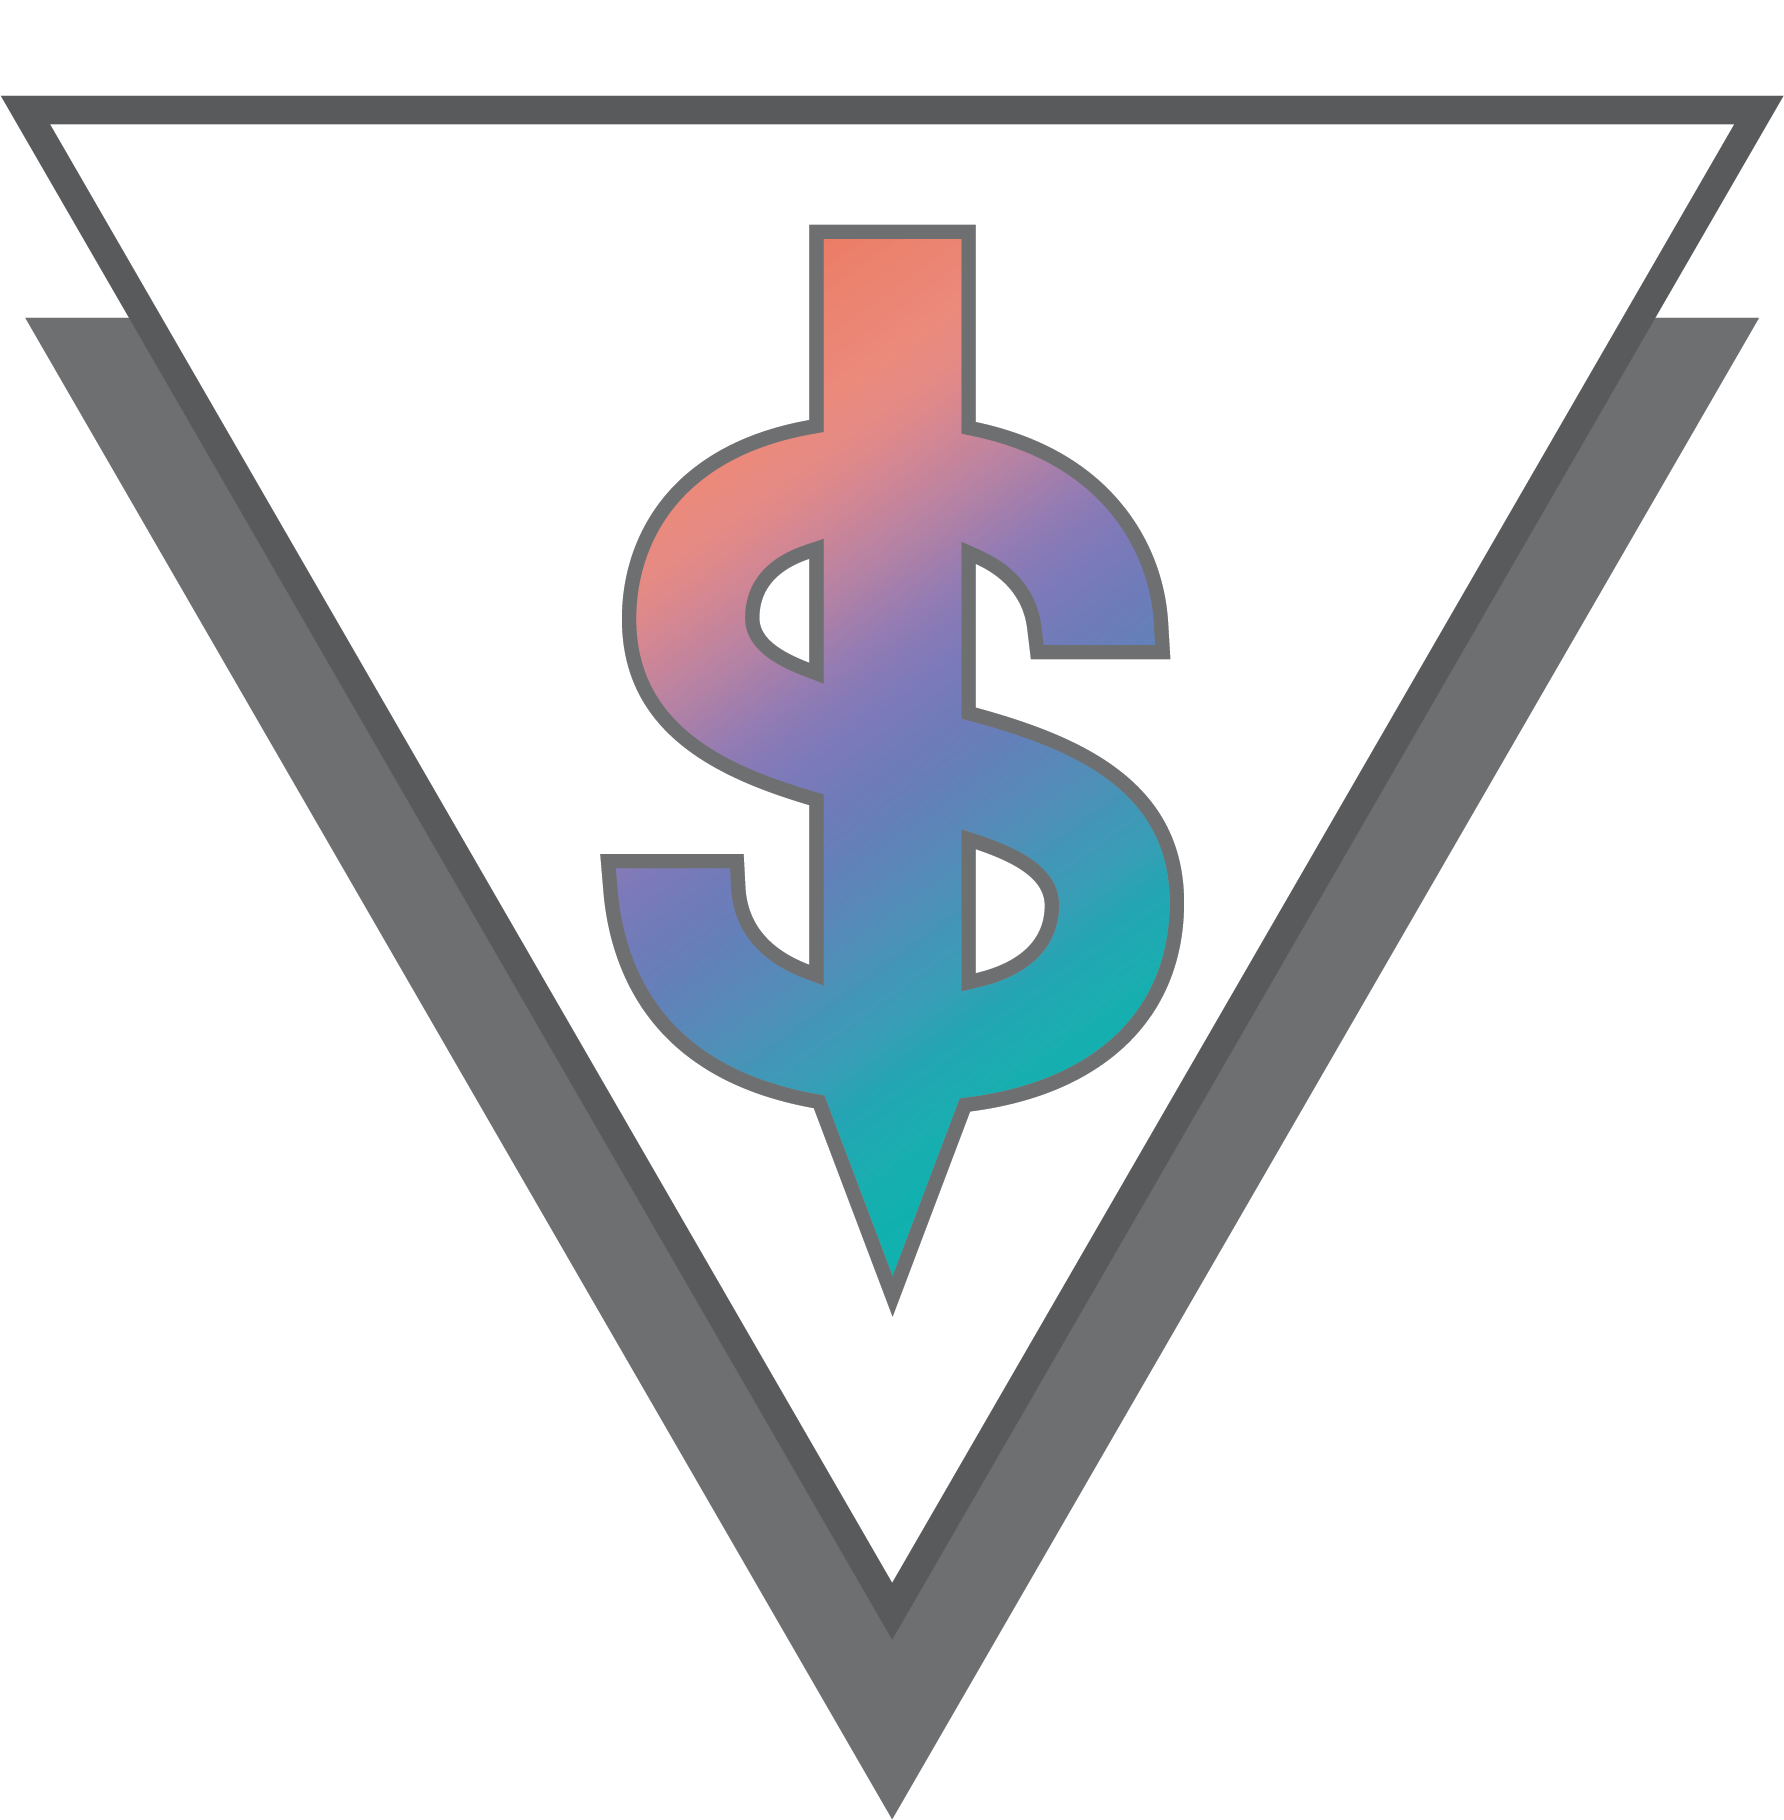 Andro Dollar Final Logo 1 - Welcome to the All New Andro Dollar